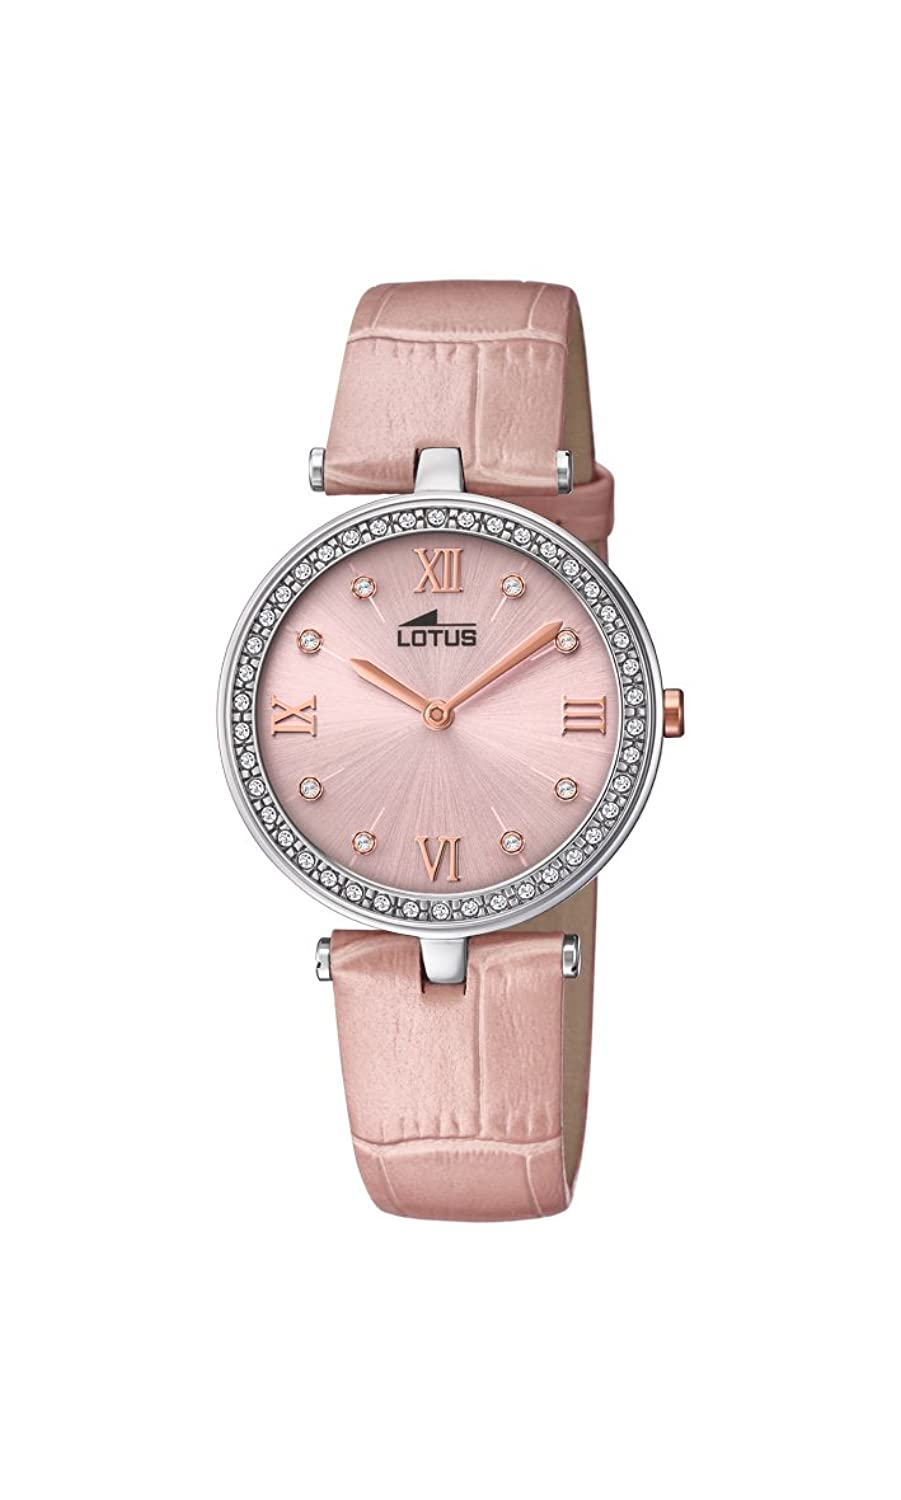 206bfd7270e3 Reloj Lotus Watches para Mujer 18462 3 comprar online. Lotus Watches ...